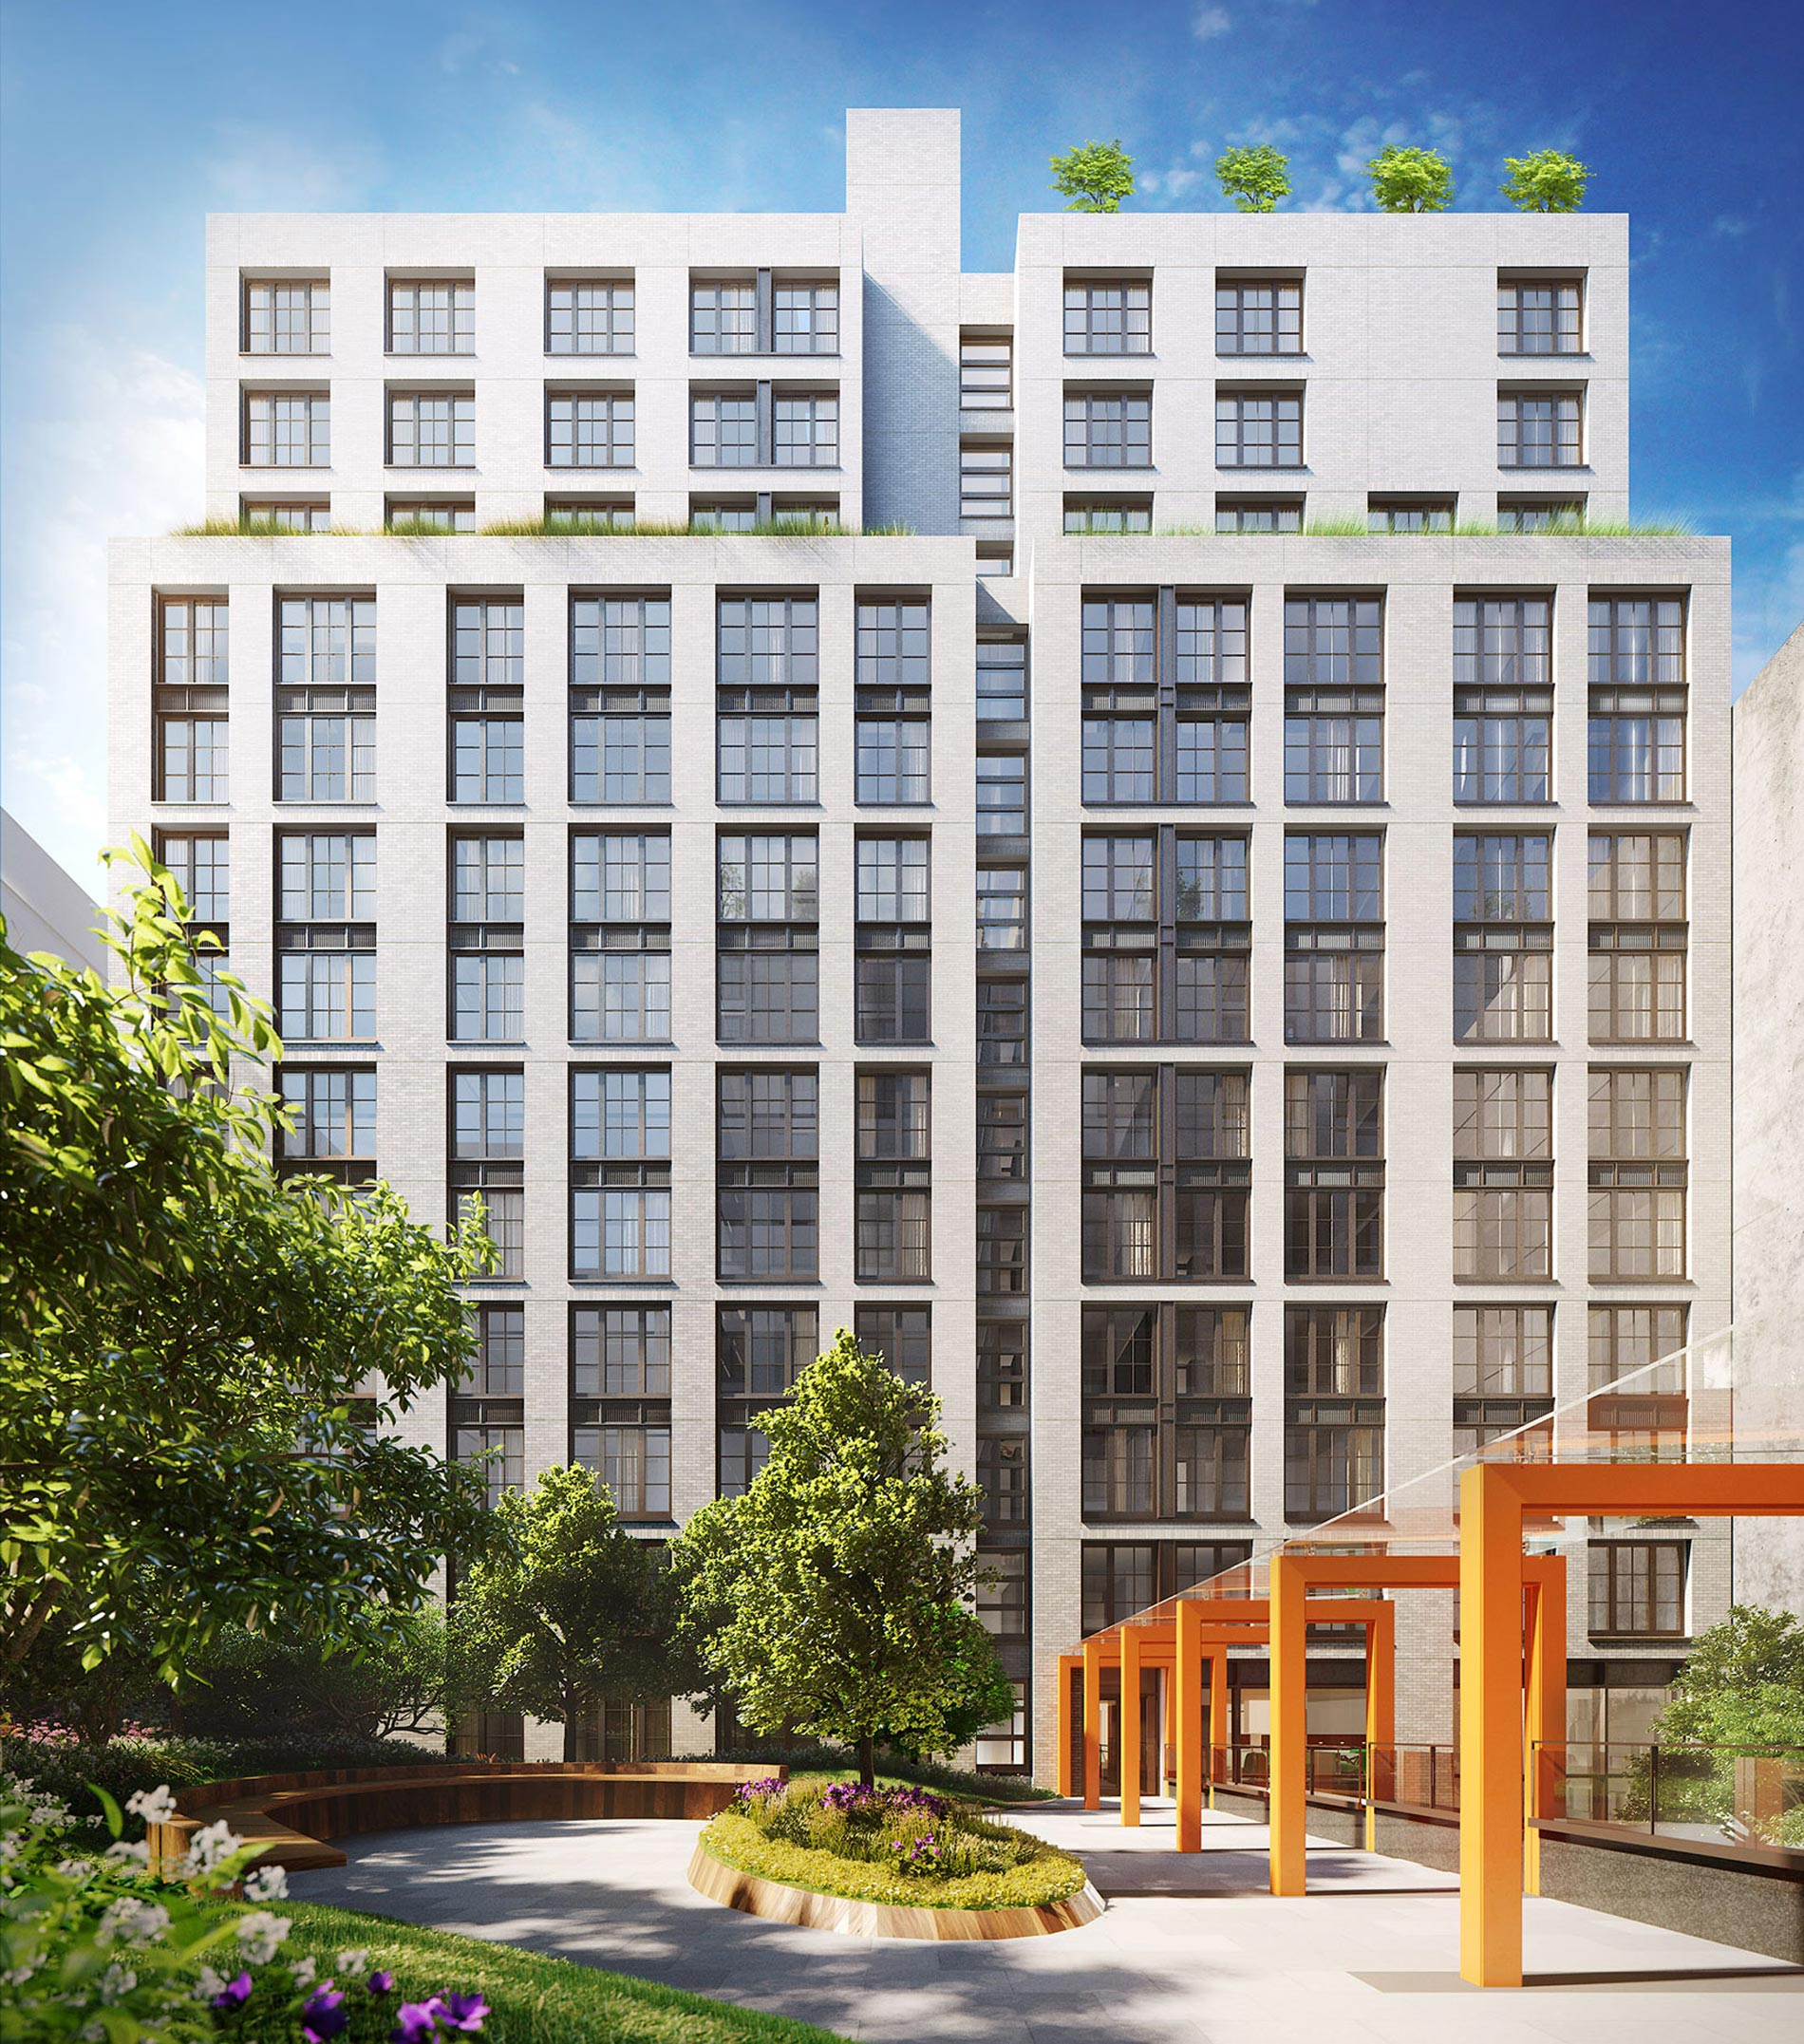 Architectural Rendering of the courtyard of the 535 West 43rd Street project located in Hell's Kitchen, New York City